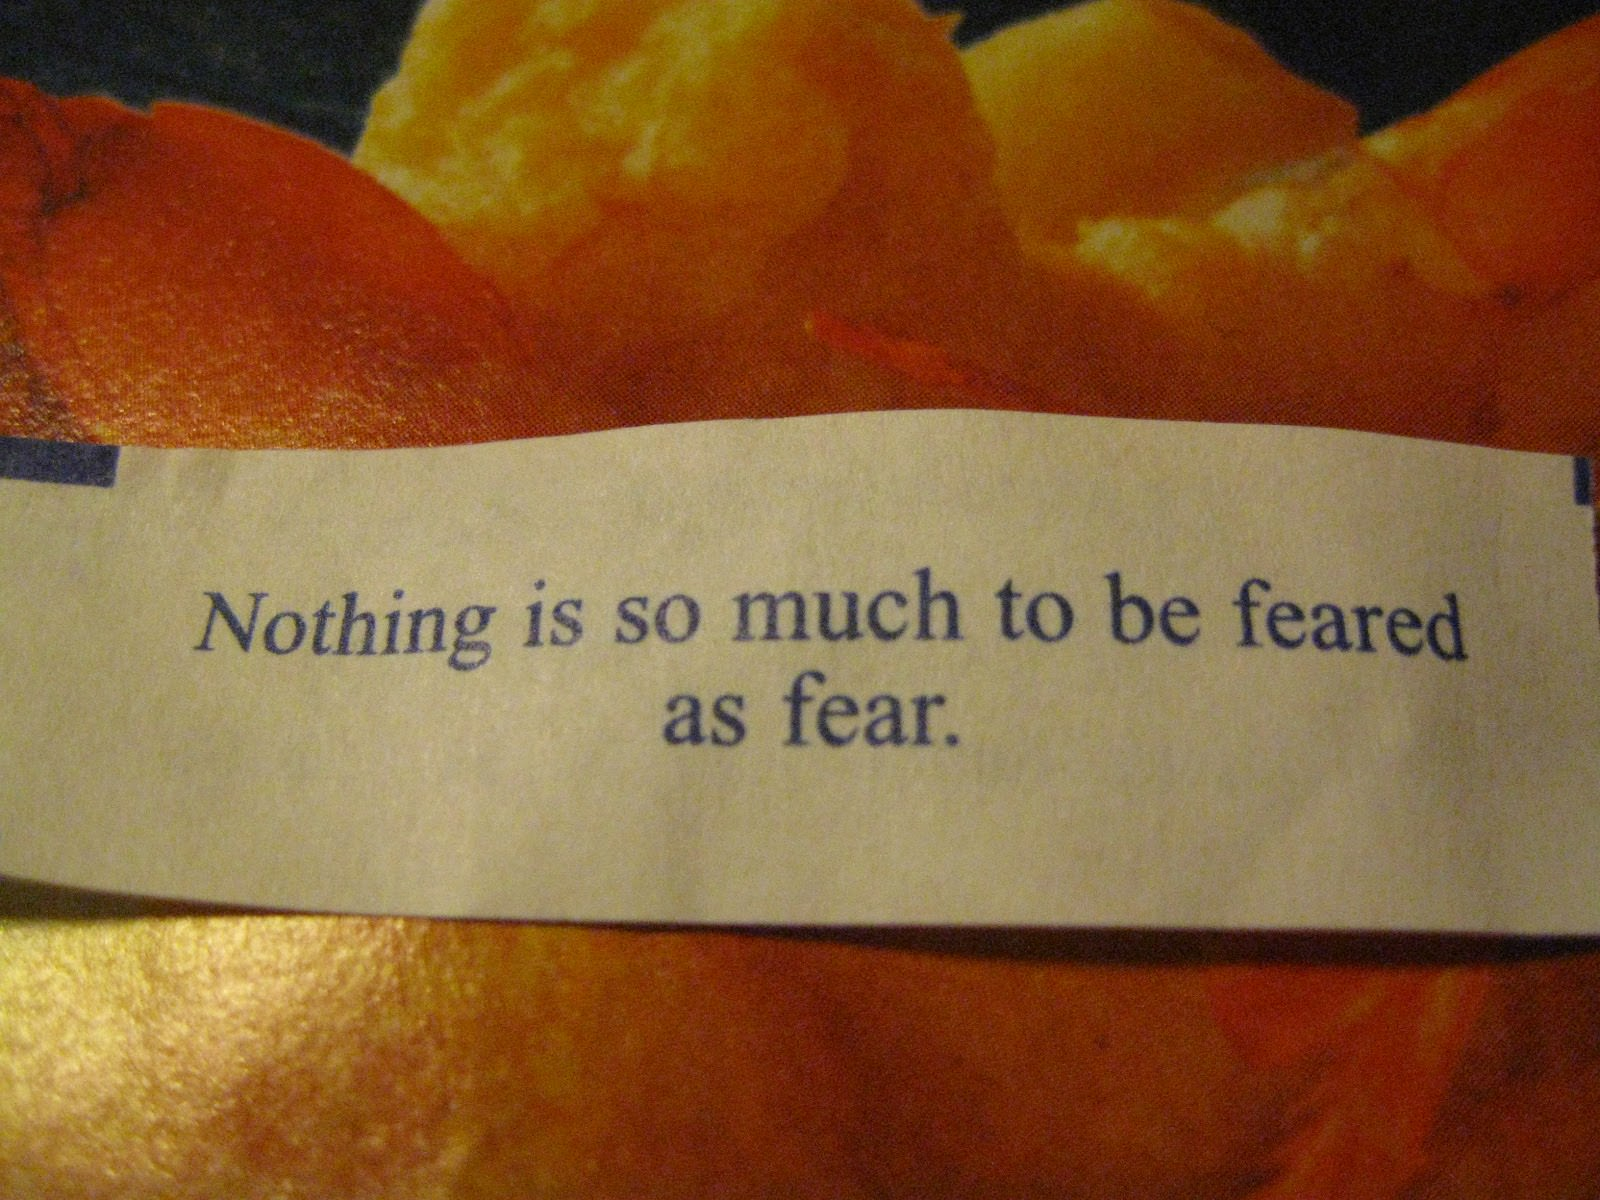 Fortune Cookie Quotes | 40 Best Chinese Fortune Cookies Quotes Sayings About Life